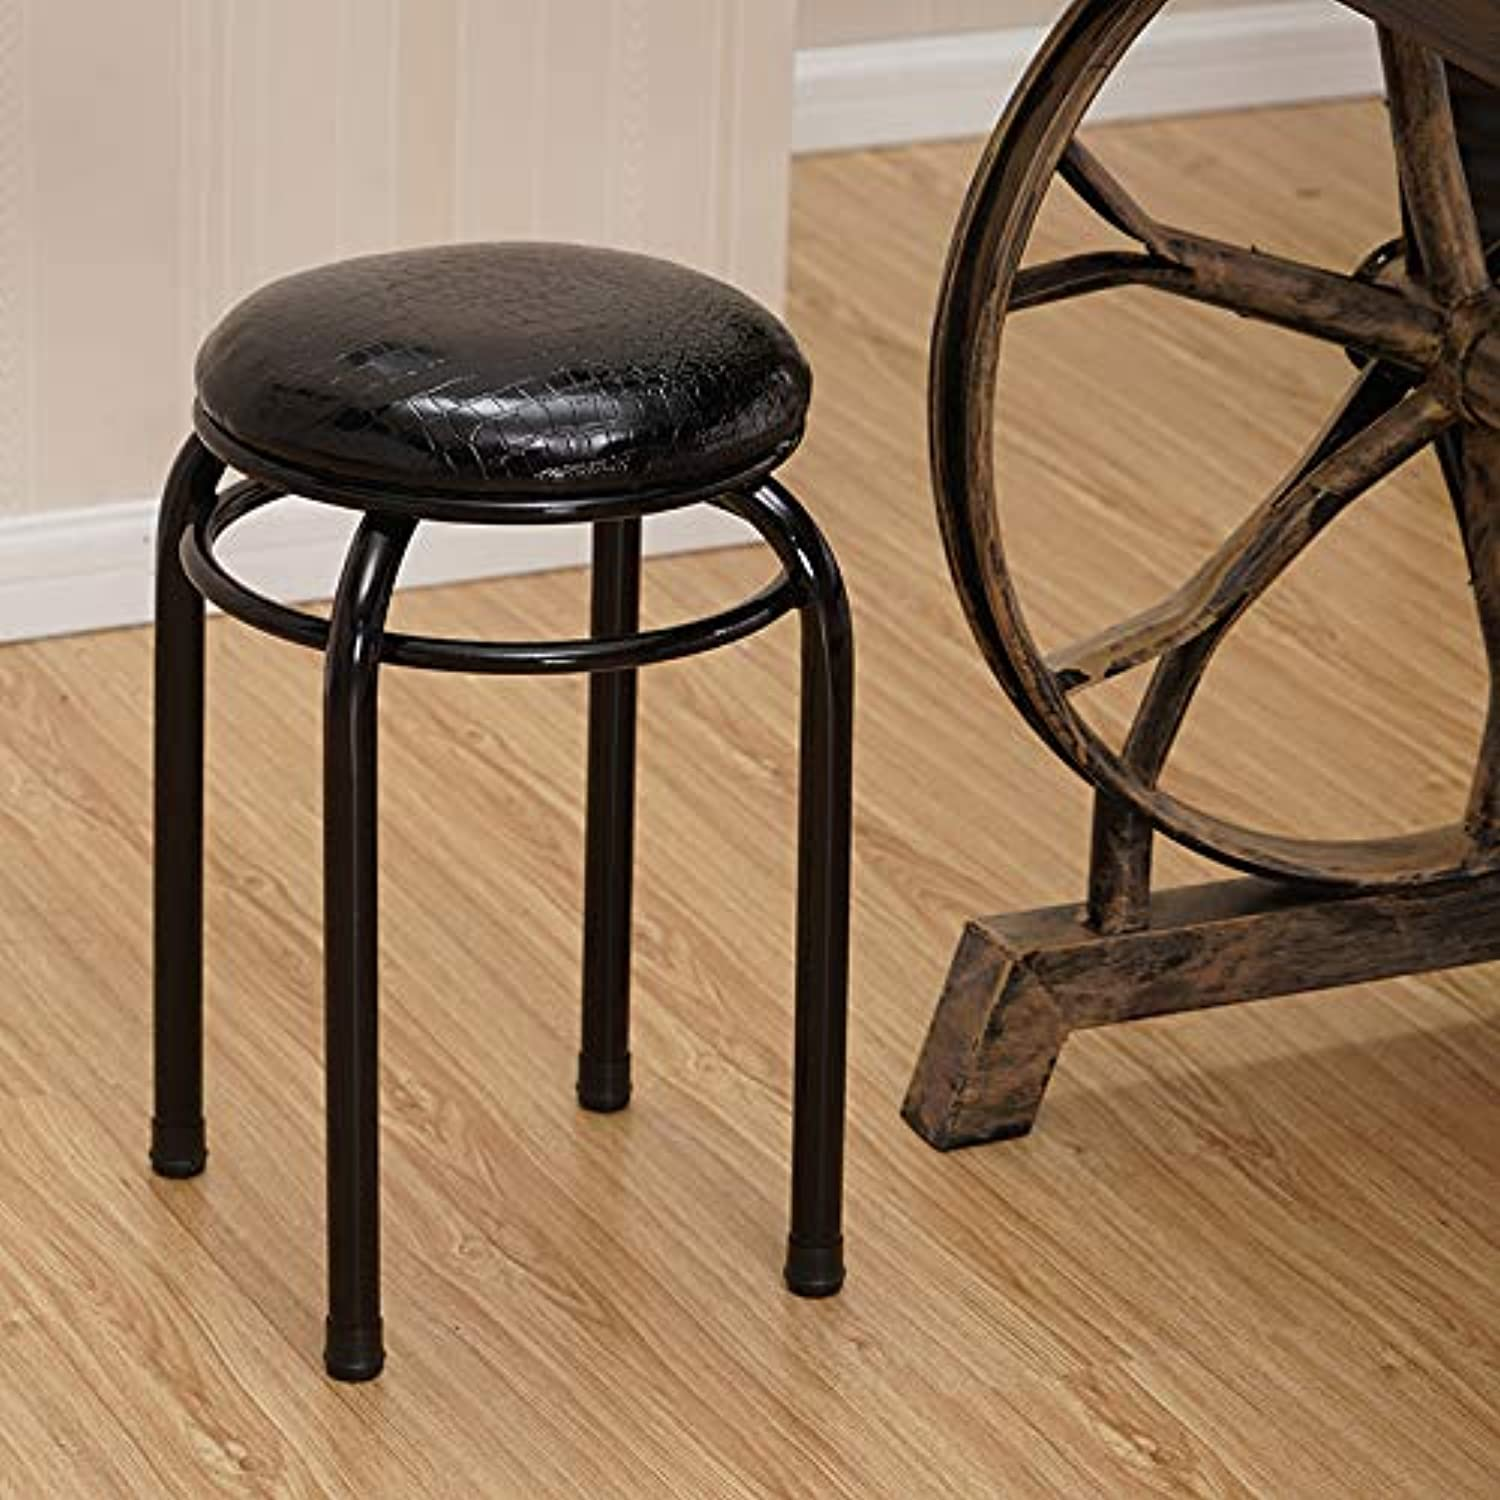 JEZBSY Solid Wood Stool Soft Foreskin Stool Home Stool Metal Dining Stool Stool Retro Nostalgic Plastic Oak JEZBSY (color   Black, Size   B)